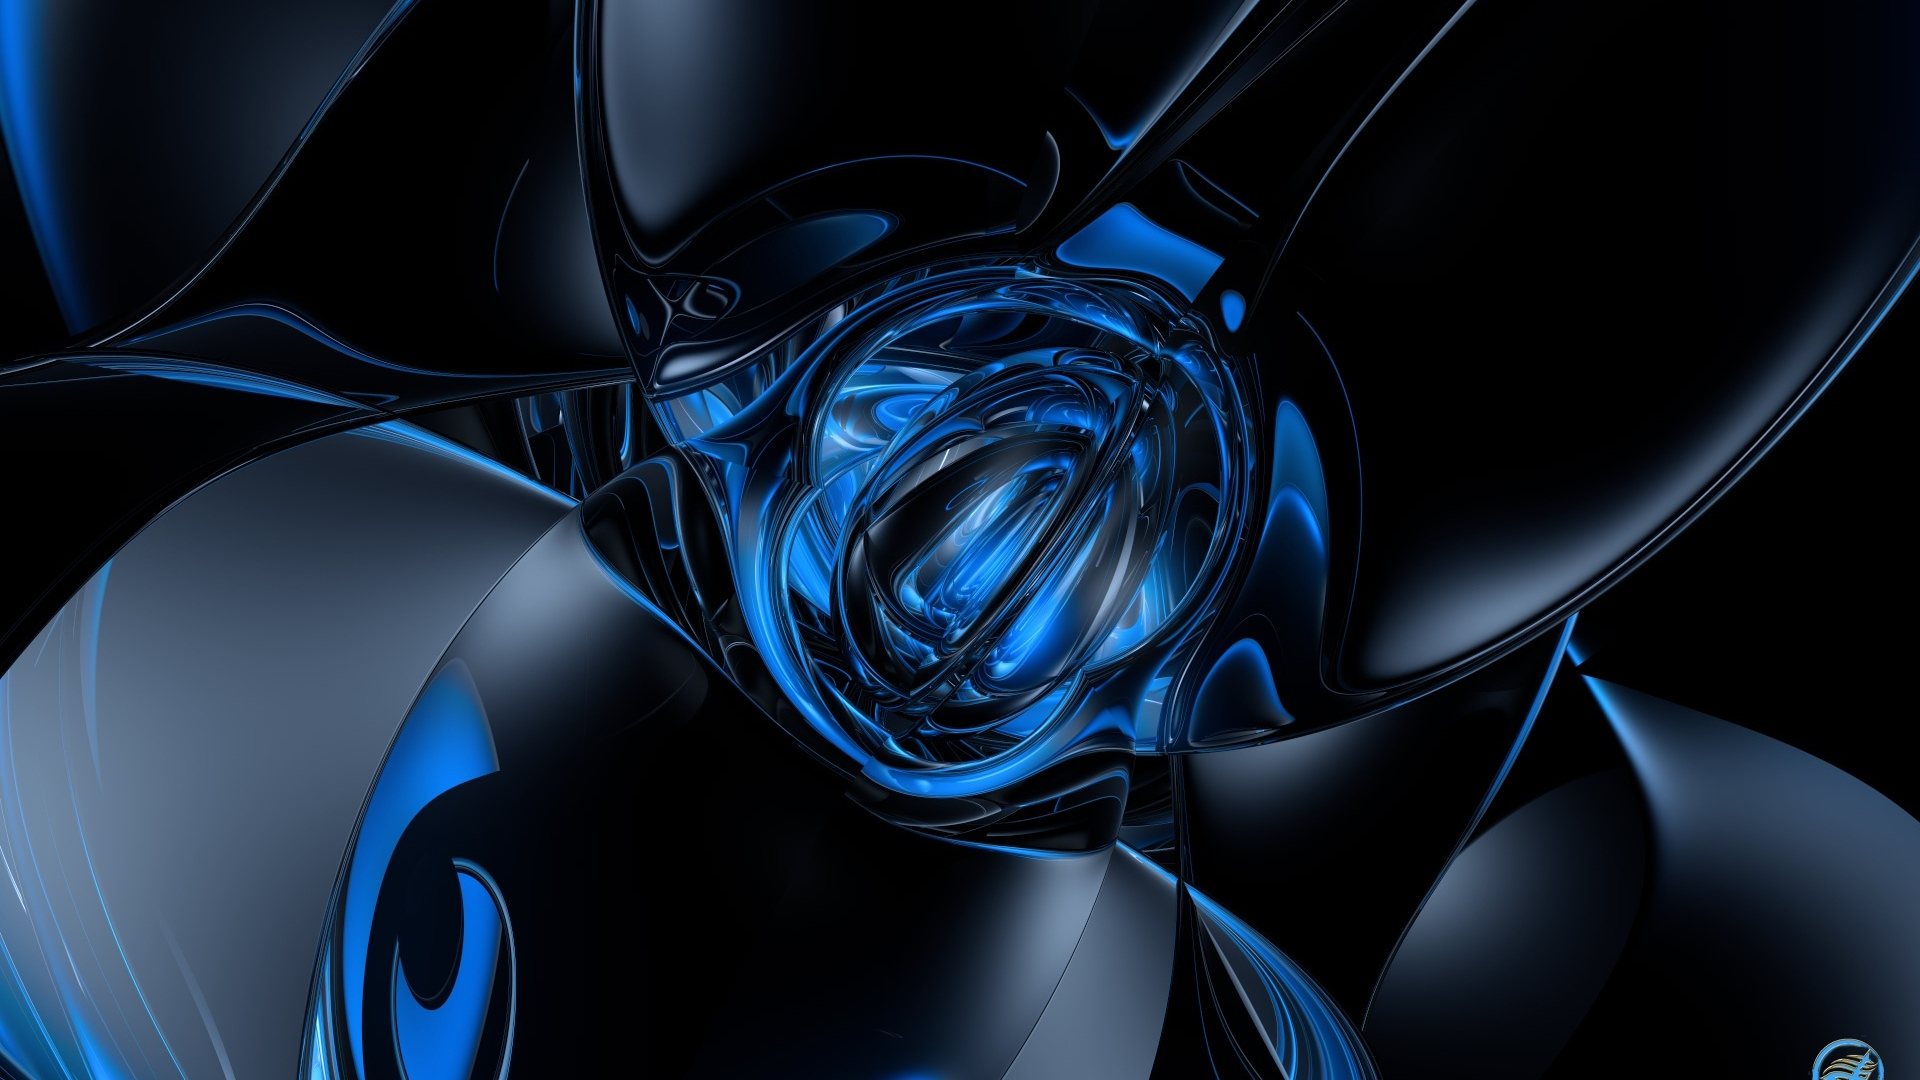 Download Wallpaper 1920x1080 Form Shape Blue Black Full HD 1080p